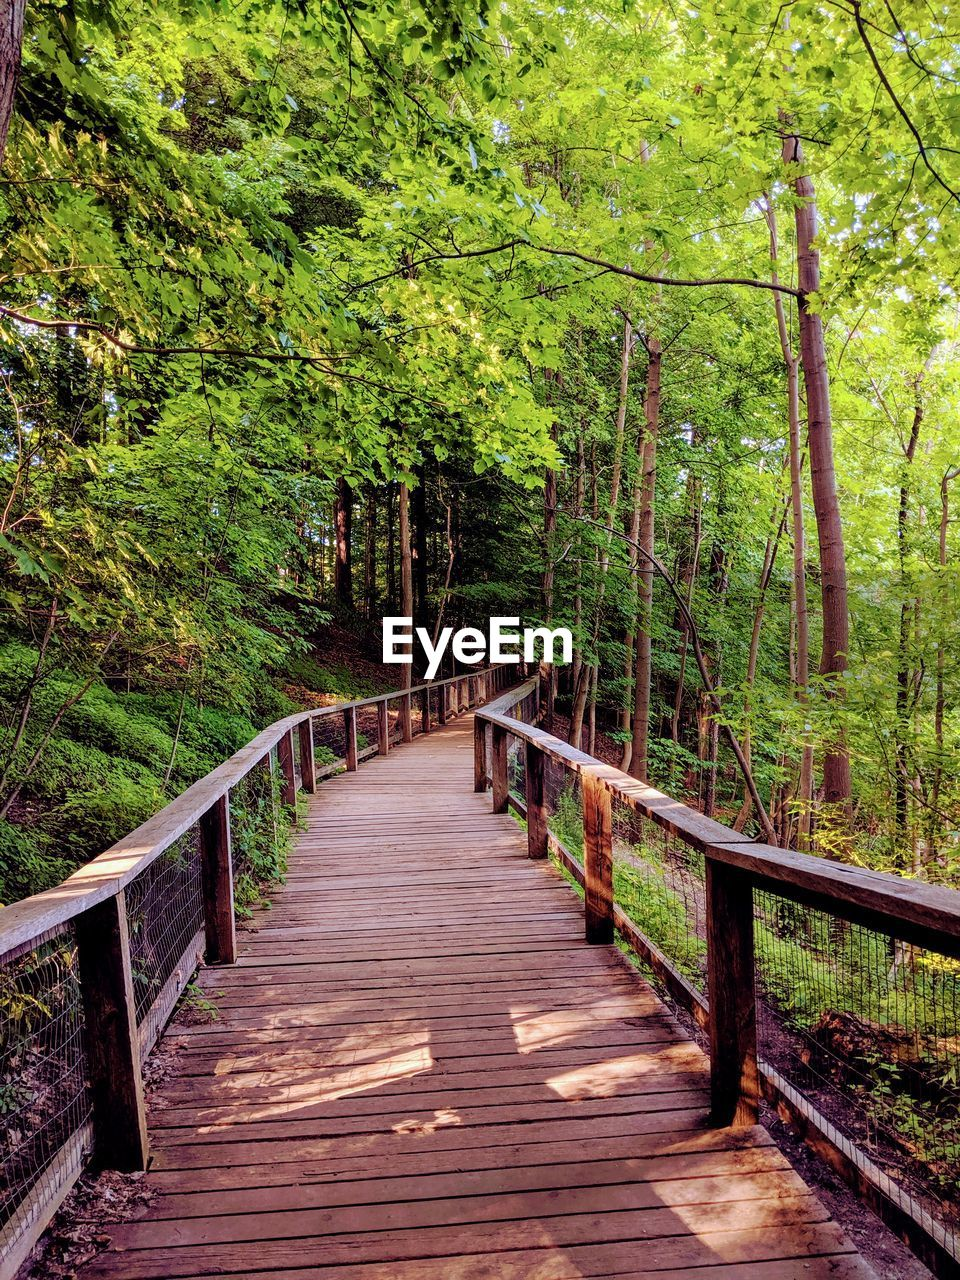 tree, forest, plant, direction, railing, connection, bridge, land, nature, wood - material, footpath, footbridge, the way forward, foliage, growth, bridge - man made structure, tranquility, lush foliage, boardwalk, wood, woodland, outdoors, no people